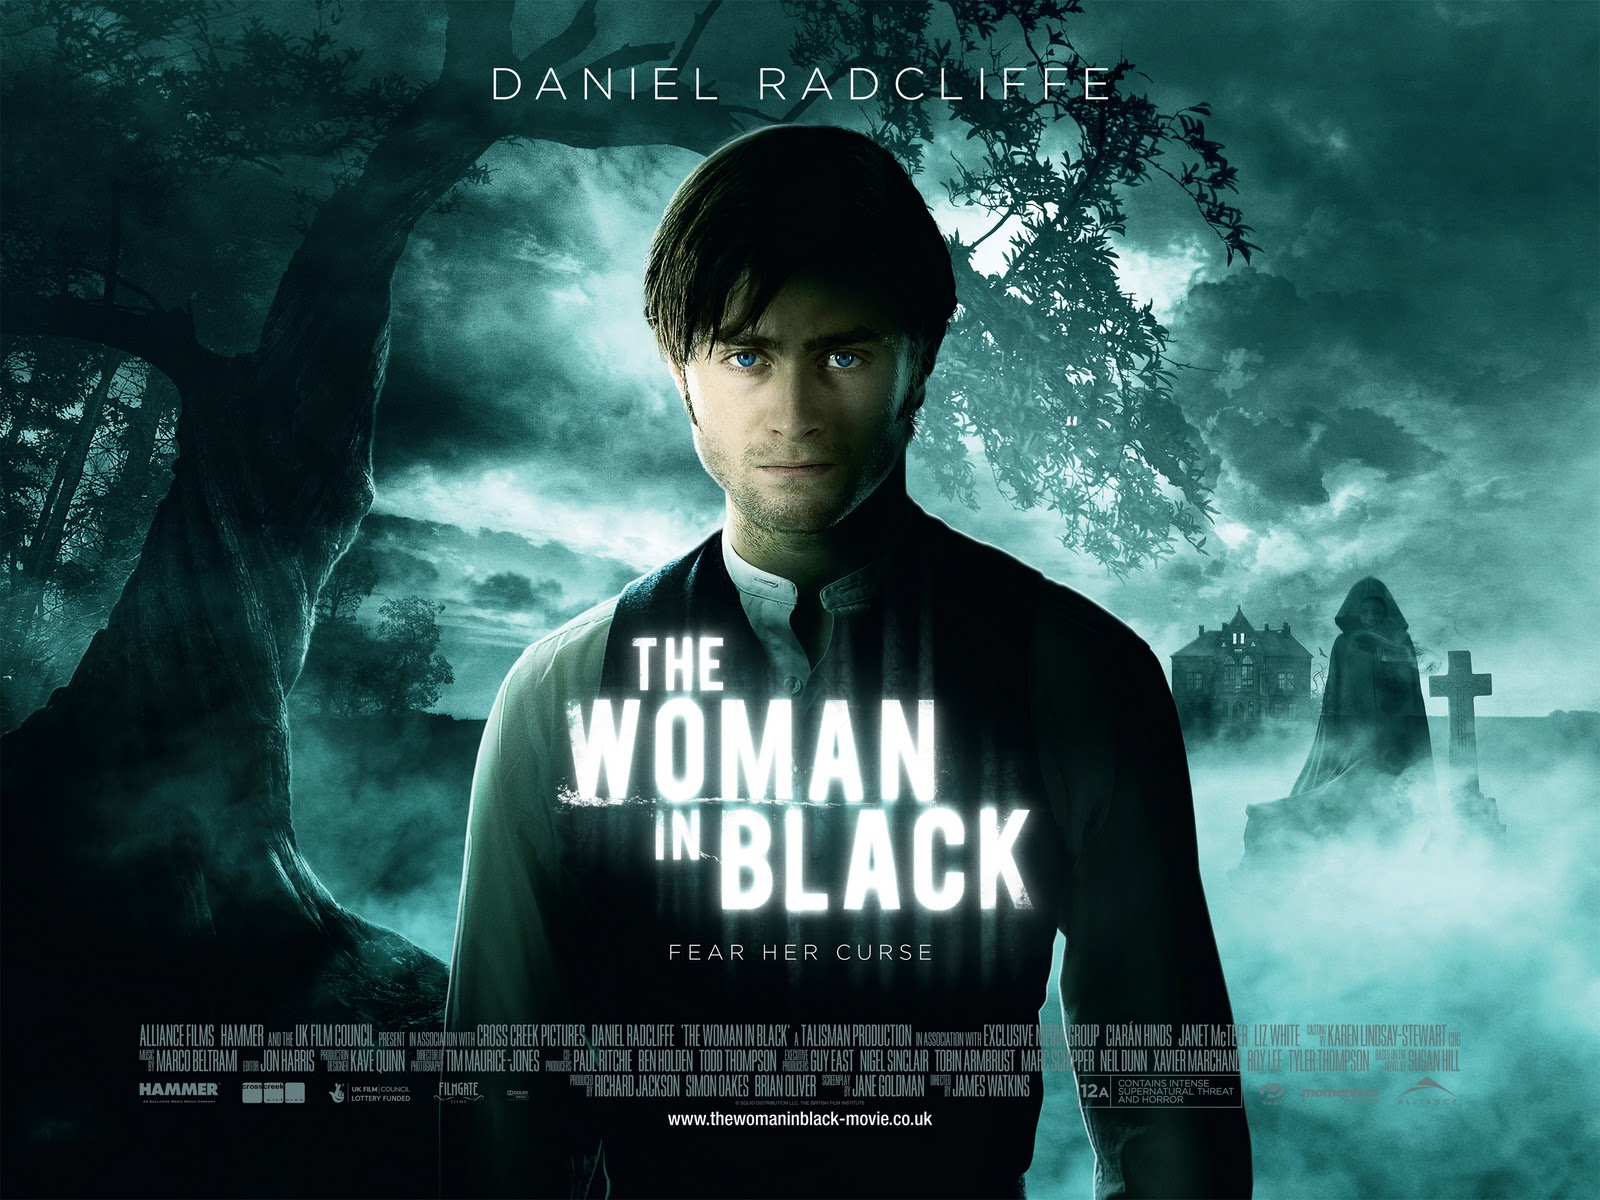 http://1.bp.blogspot.com/-pDEmsmxyVWE/Tx_cwml7JiI/AAAAAAAABTU/ws-wreScdQc/s1600/The_Woman_In_Black_Quad_Poster.jpg